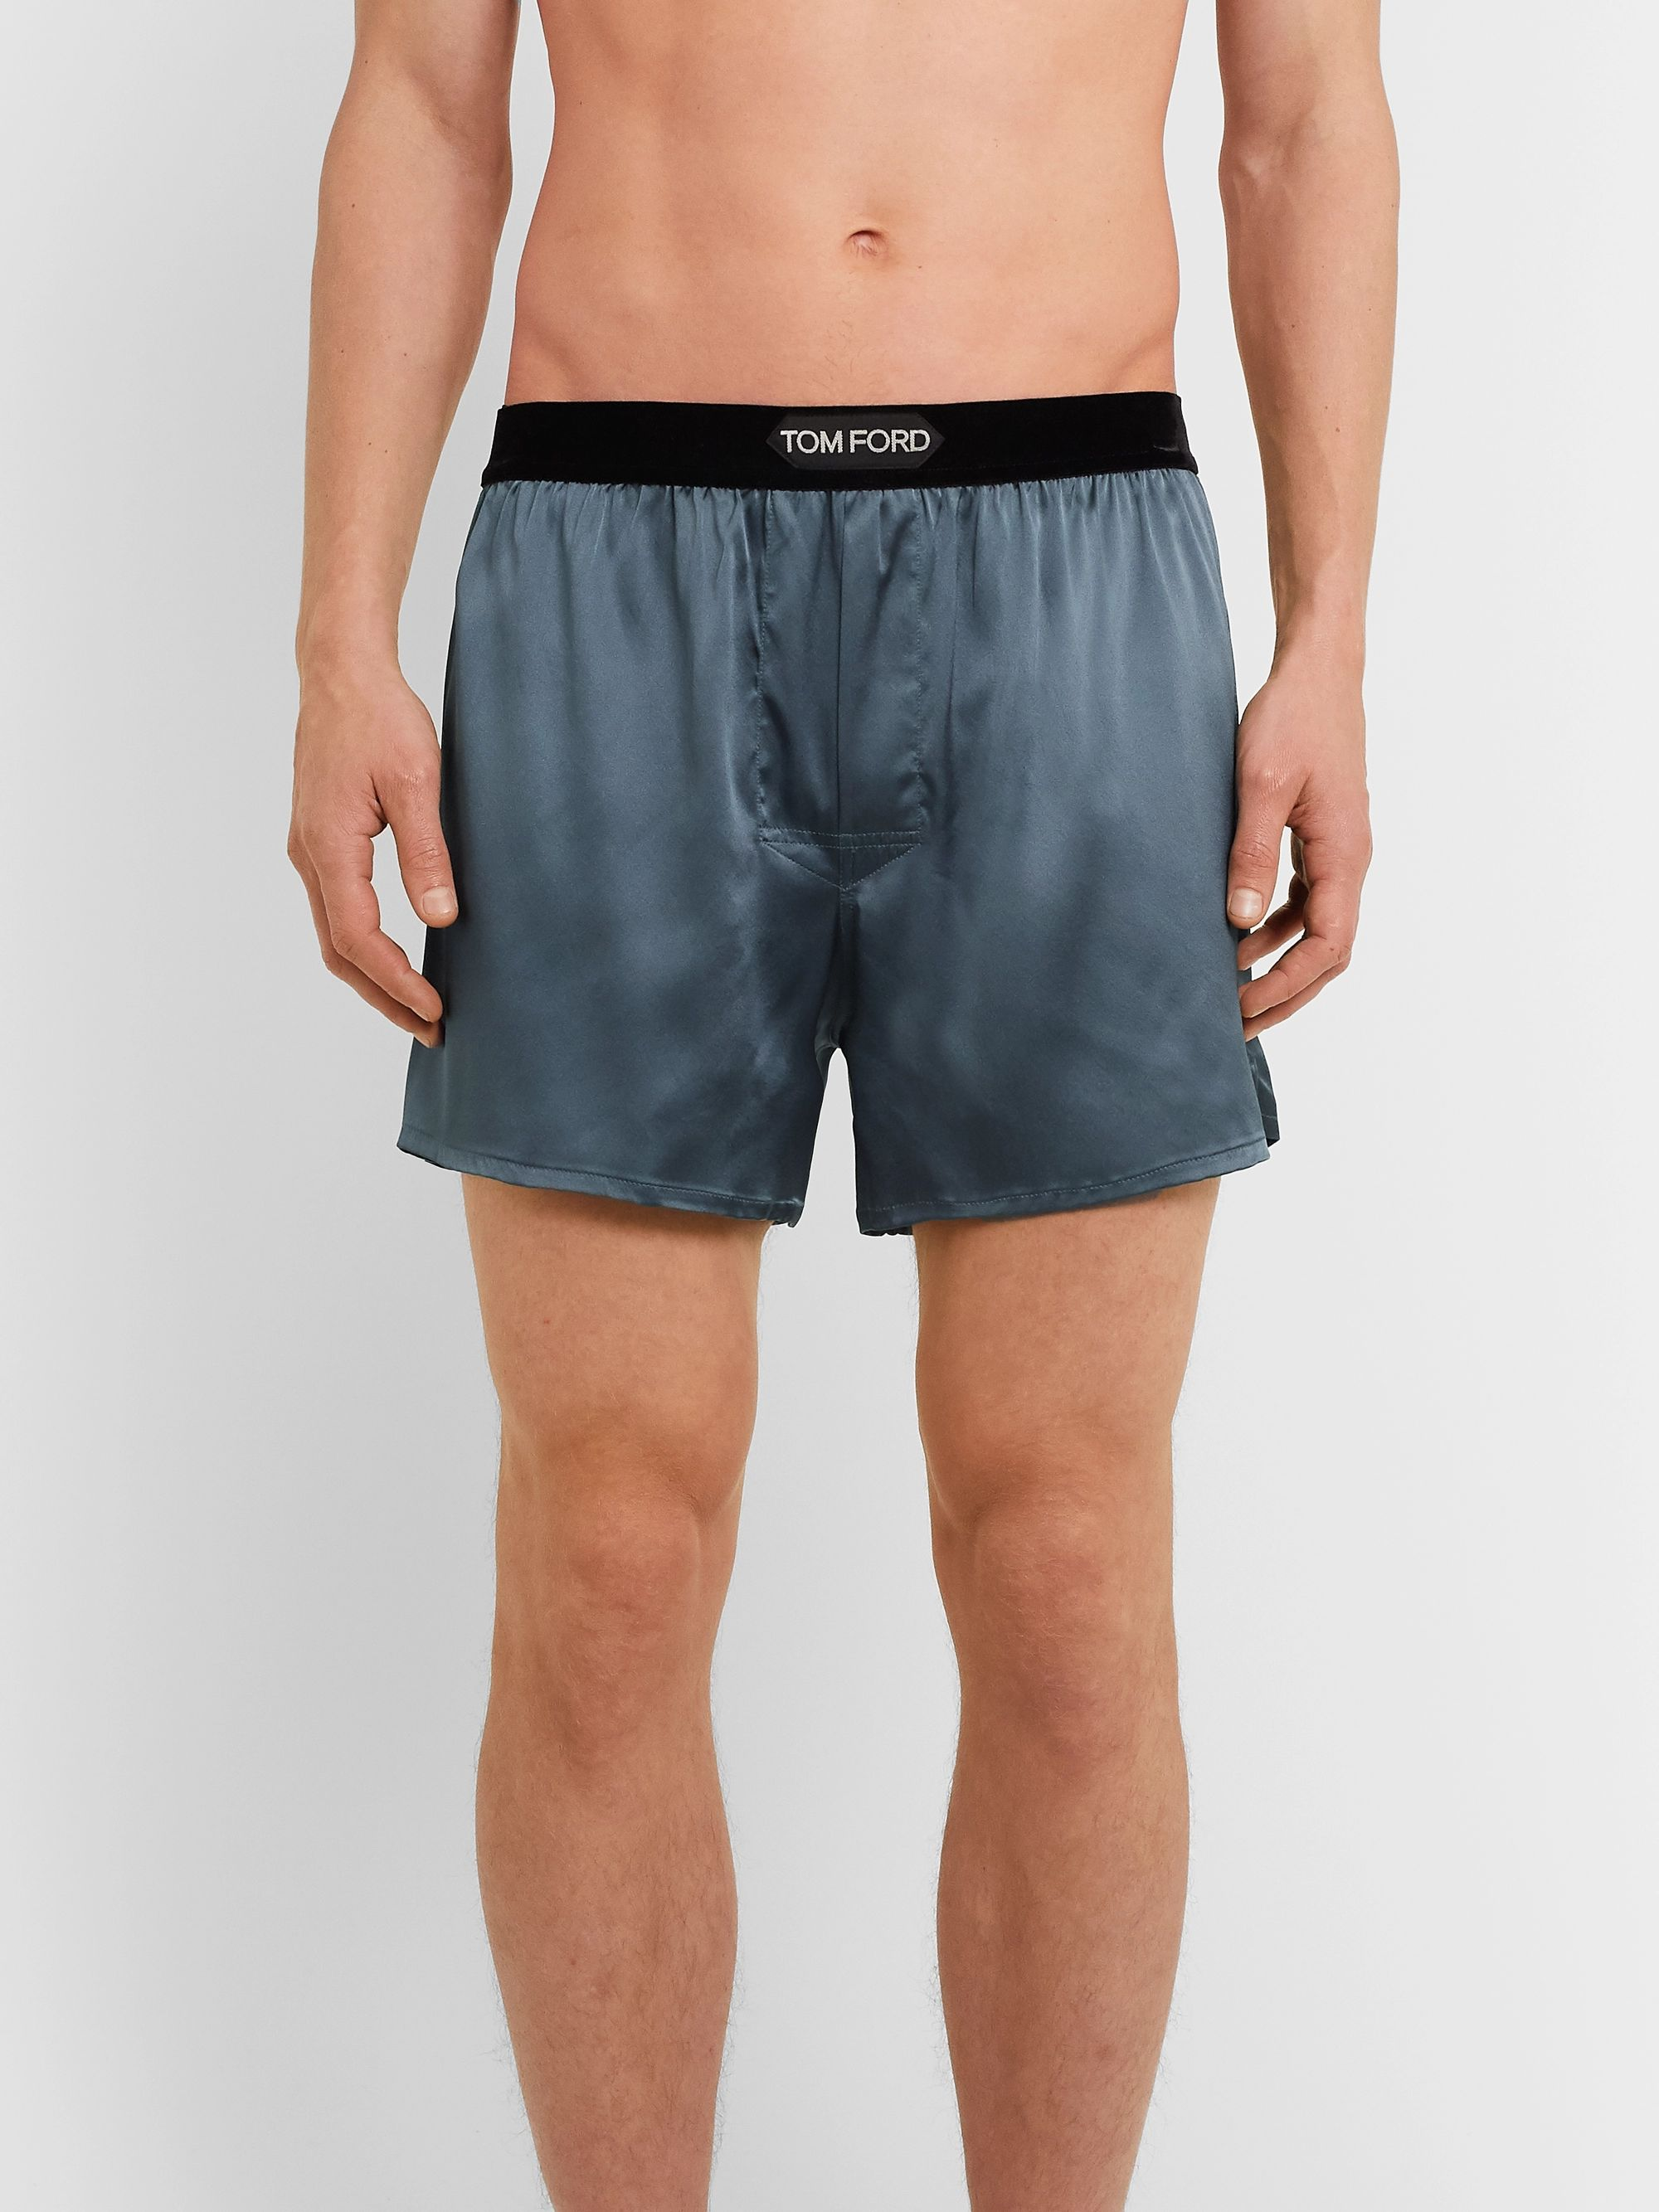 TOM FORD Velvet-Trimmed Stretch-Silk Satin Boxer Shorts